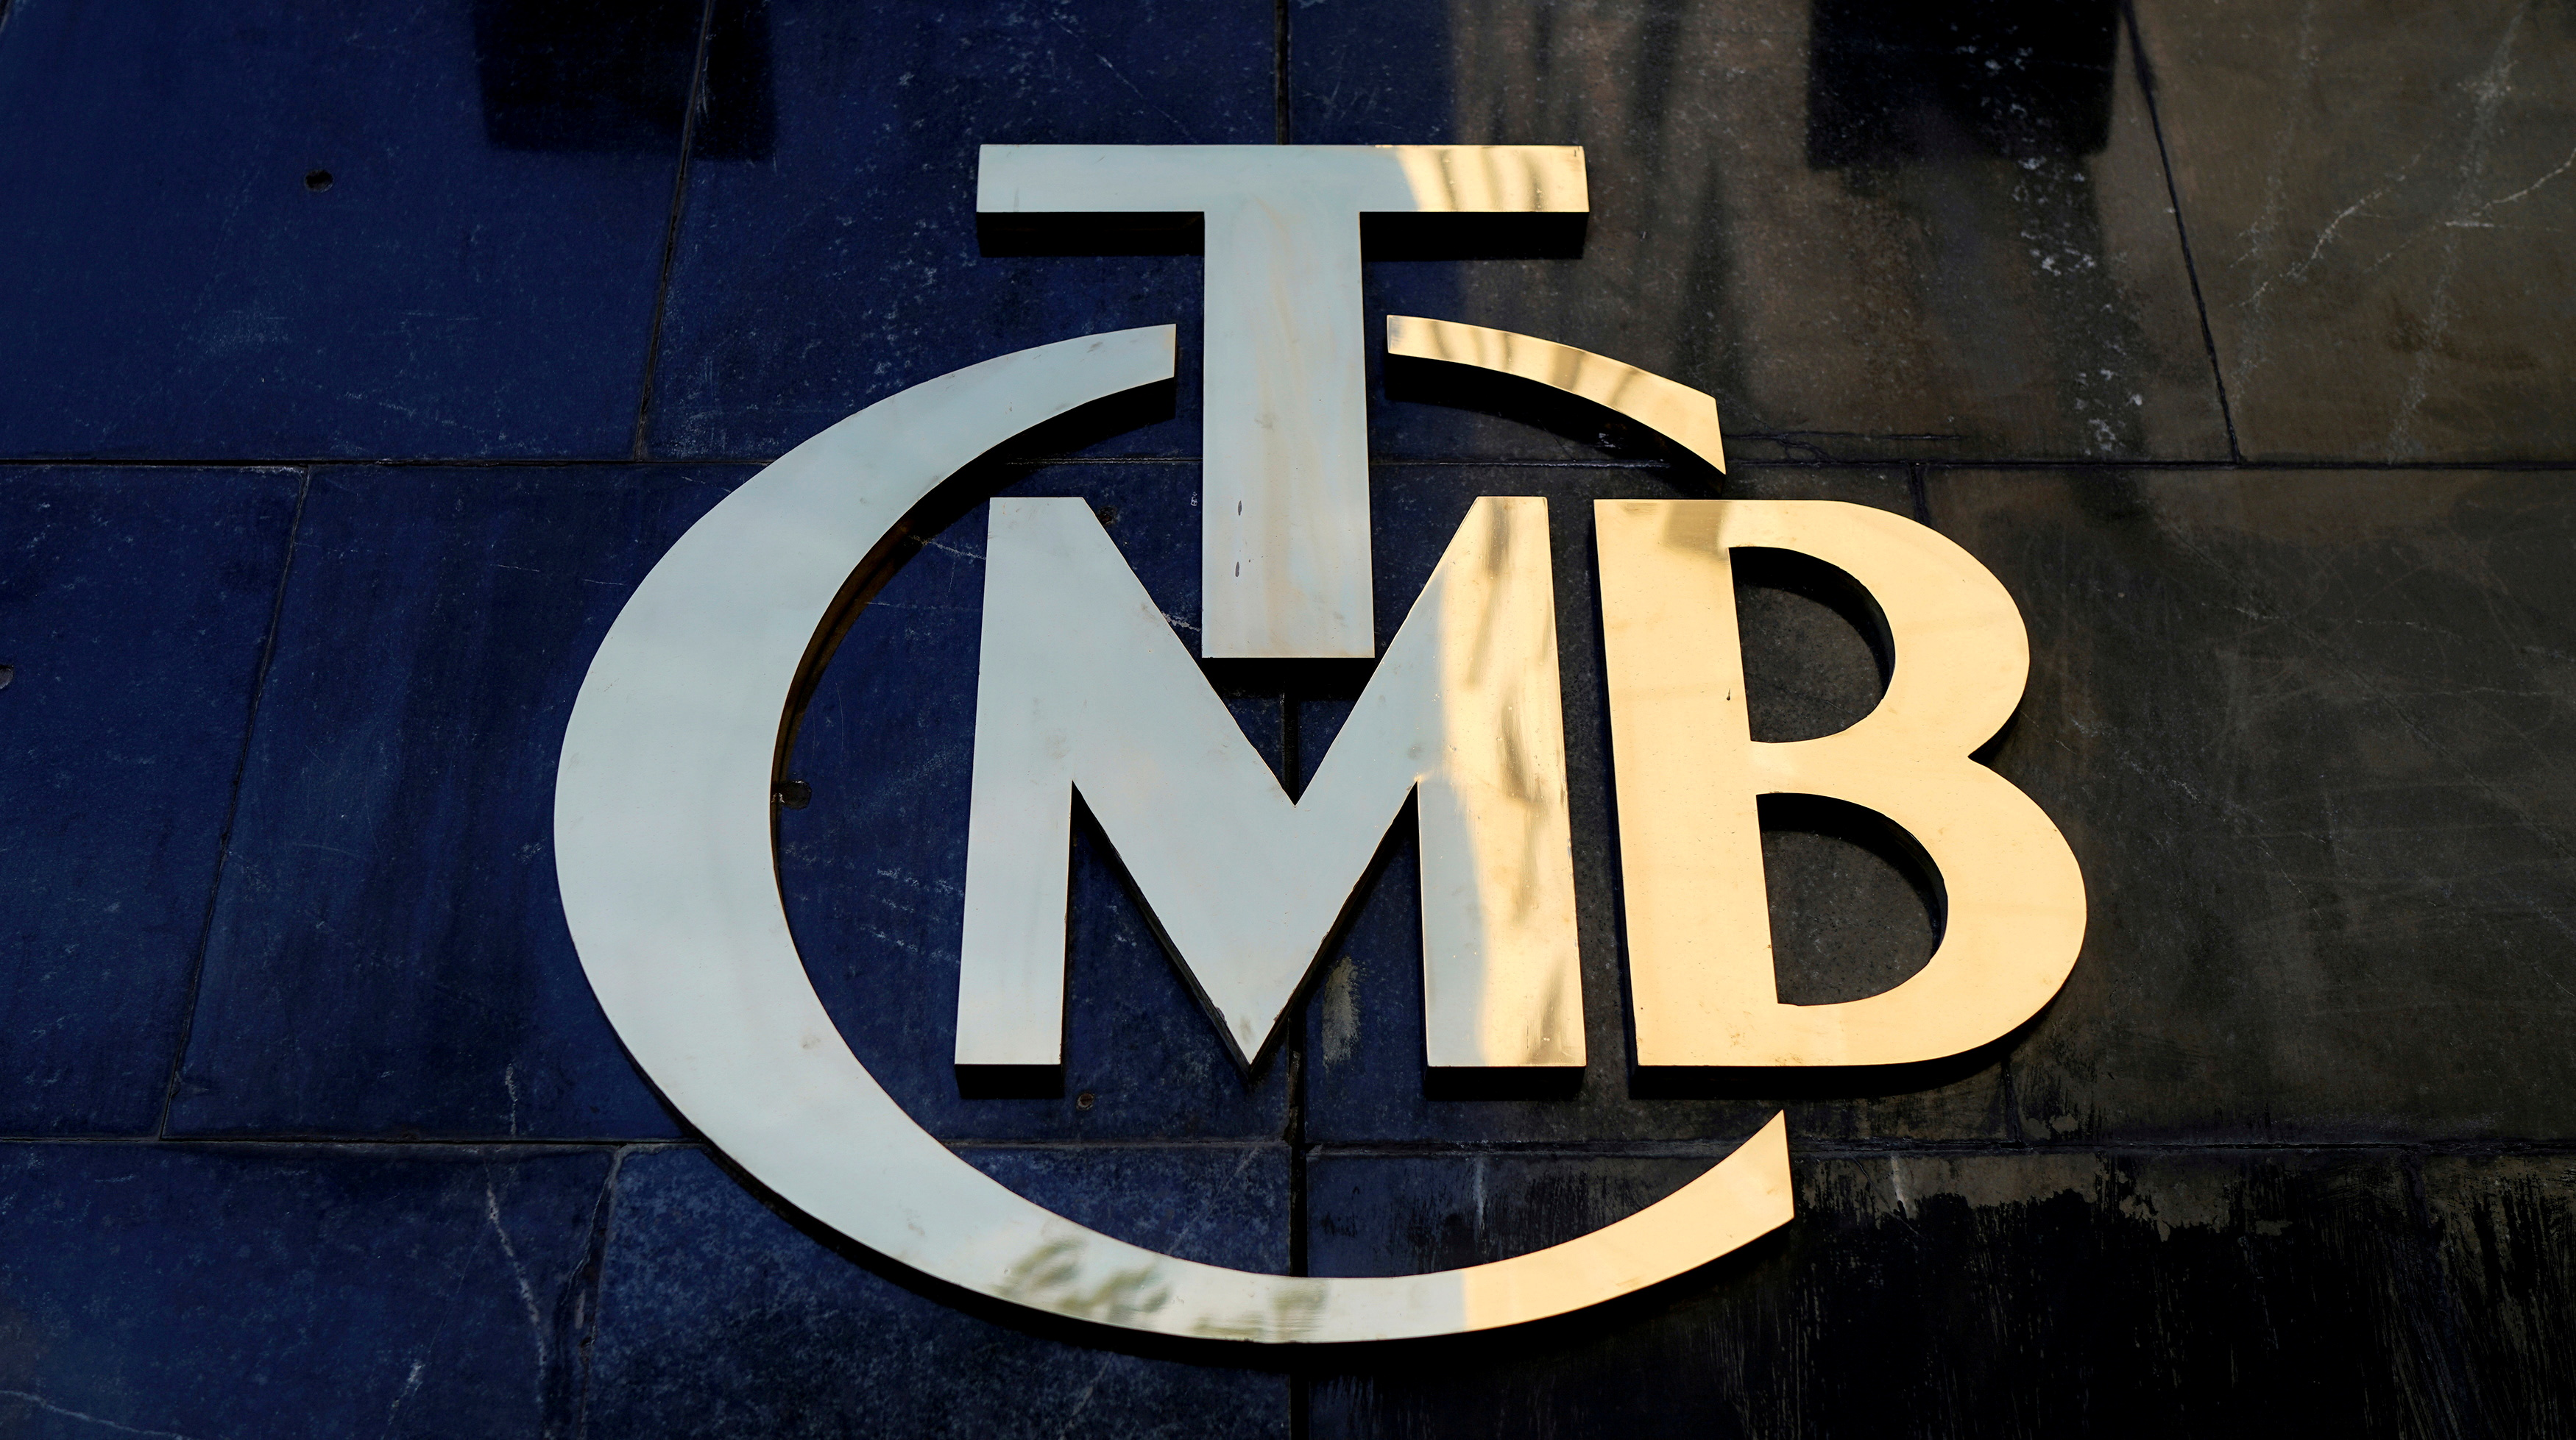 A logo of Turkey's Central Bank (TCMB) is pictured at the entrance of the bank's headquarters in Ankara, Turkey April 19, 2015. REUTERS/Umit Bektas